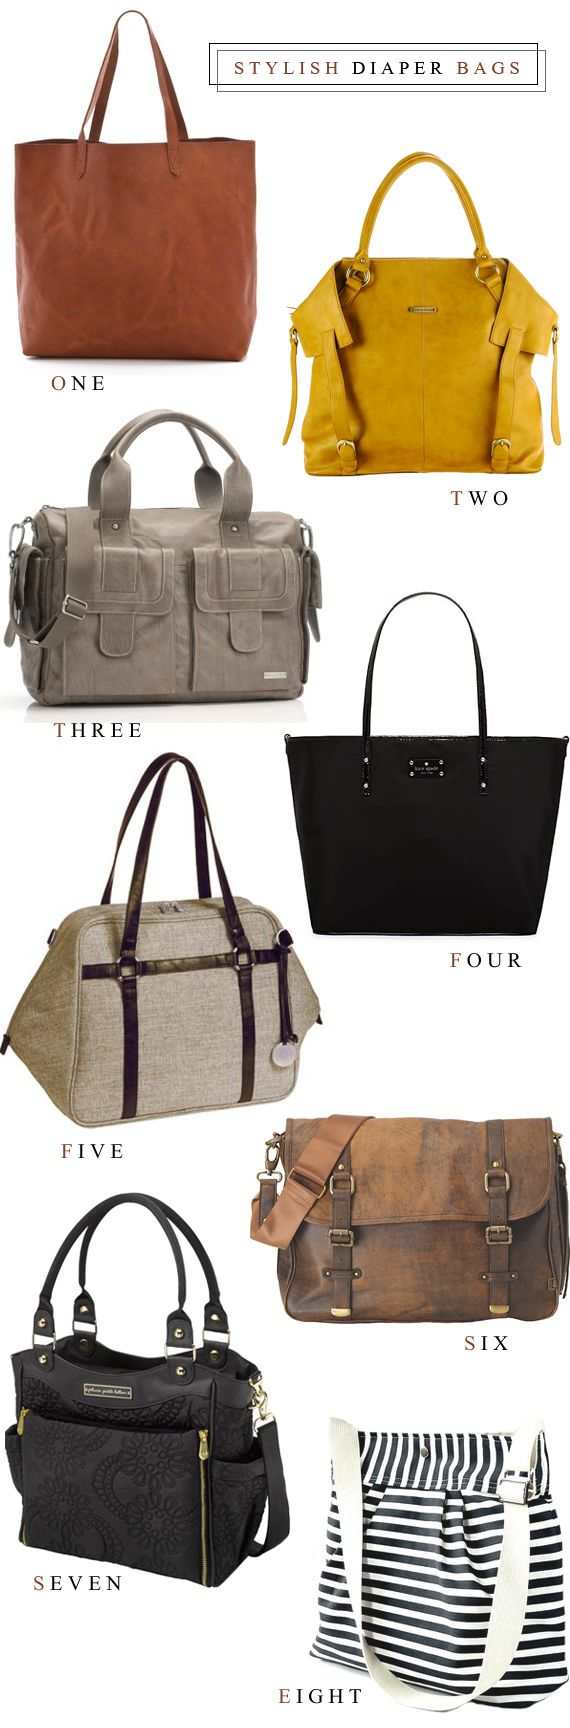 8 Stylish Diaper Bags (that work as handbags too) // Bubby and Bean